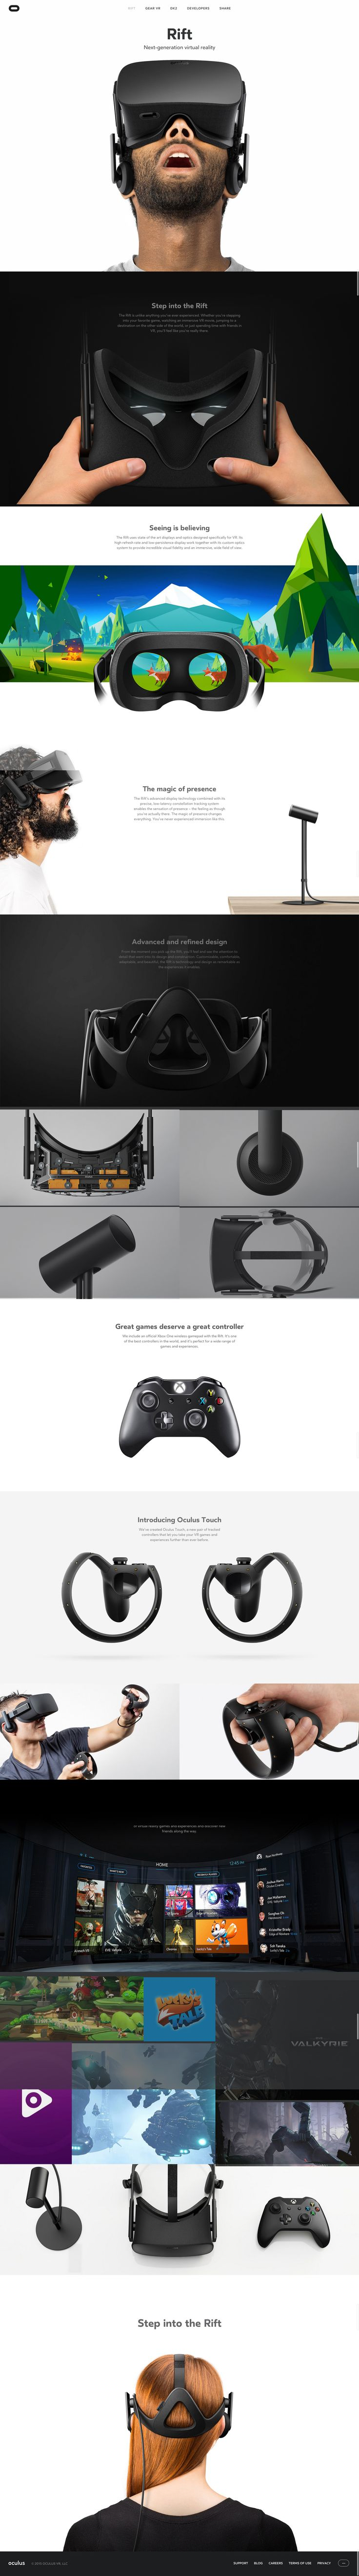 (Week 1) oculus.com/rift Minimal, parallax infinite scroll, focus on the product it lets the product speak for itself (odd since the assumed target audience is people focused on specs and comparison to others. Maybe unnecessary in a relatively new field?)